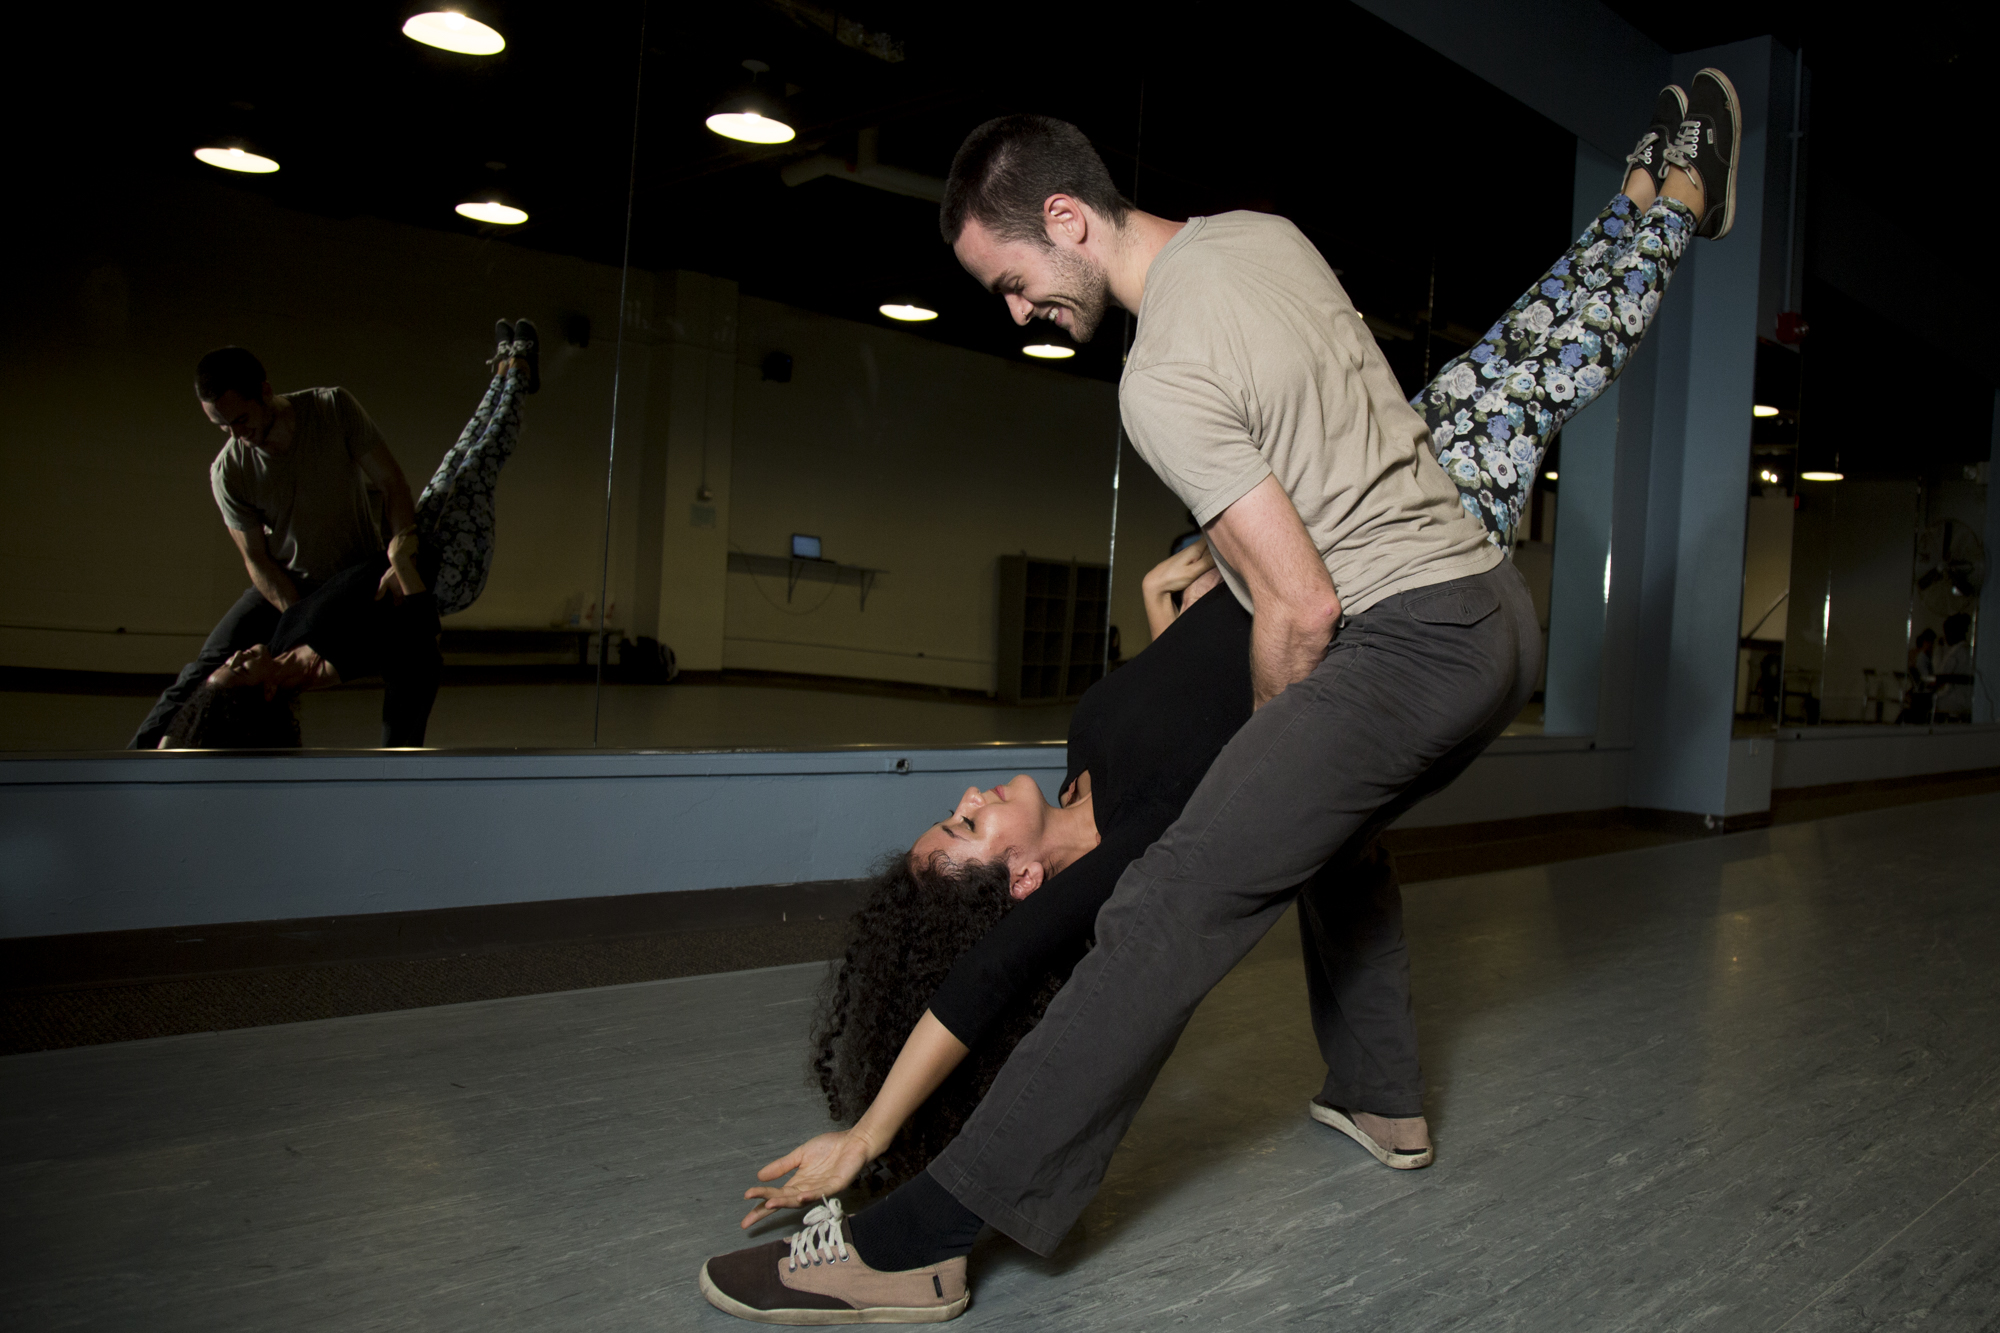 Khaleelah Elhajoui (left), a senior at UNC, fusion dances with Ansel Dow in the Student Union in Chapel Hill, N.C., on Oct. 14, 2016. Hear her talk about dancing below: